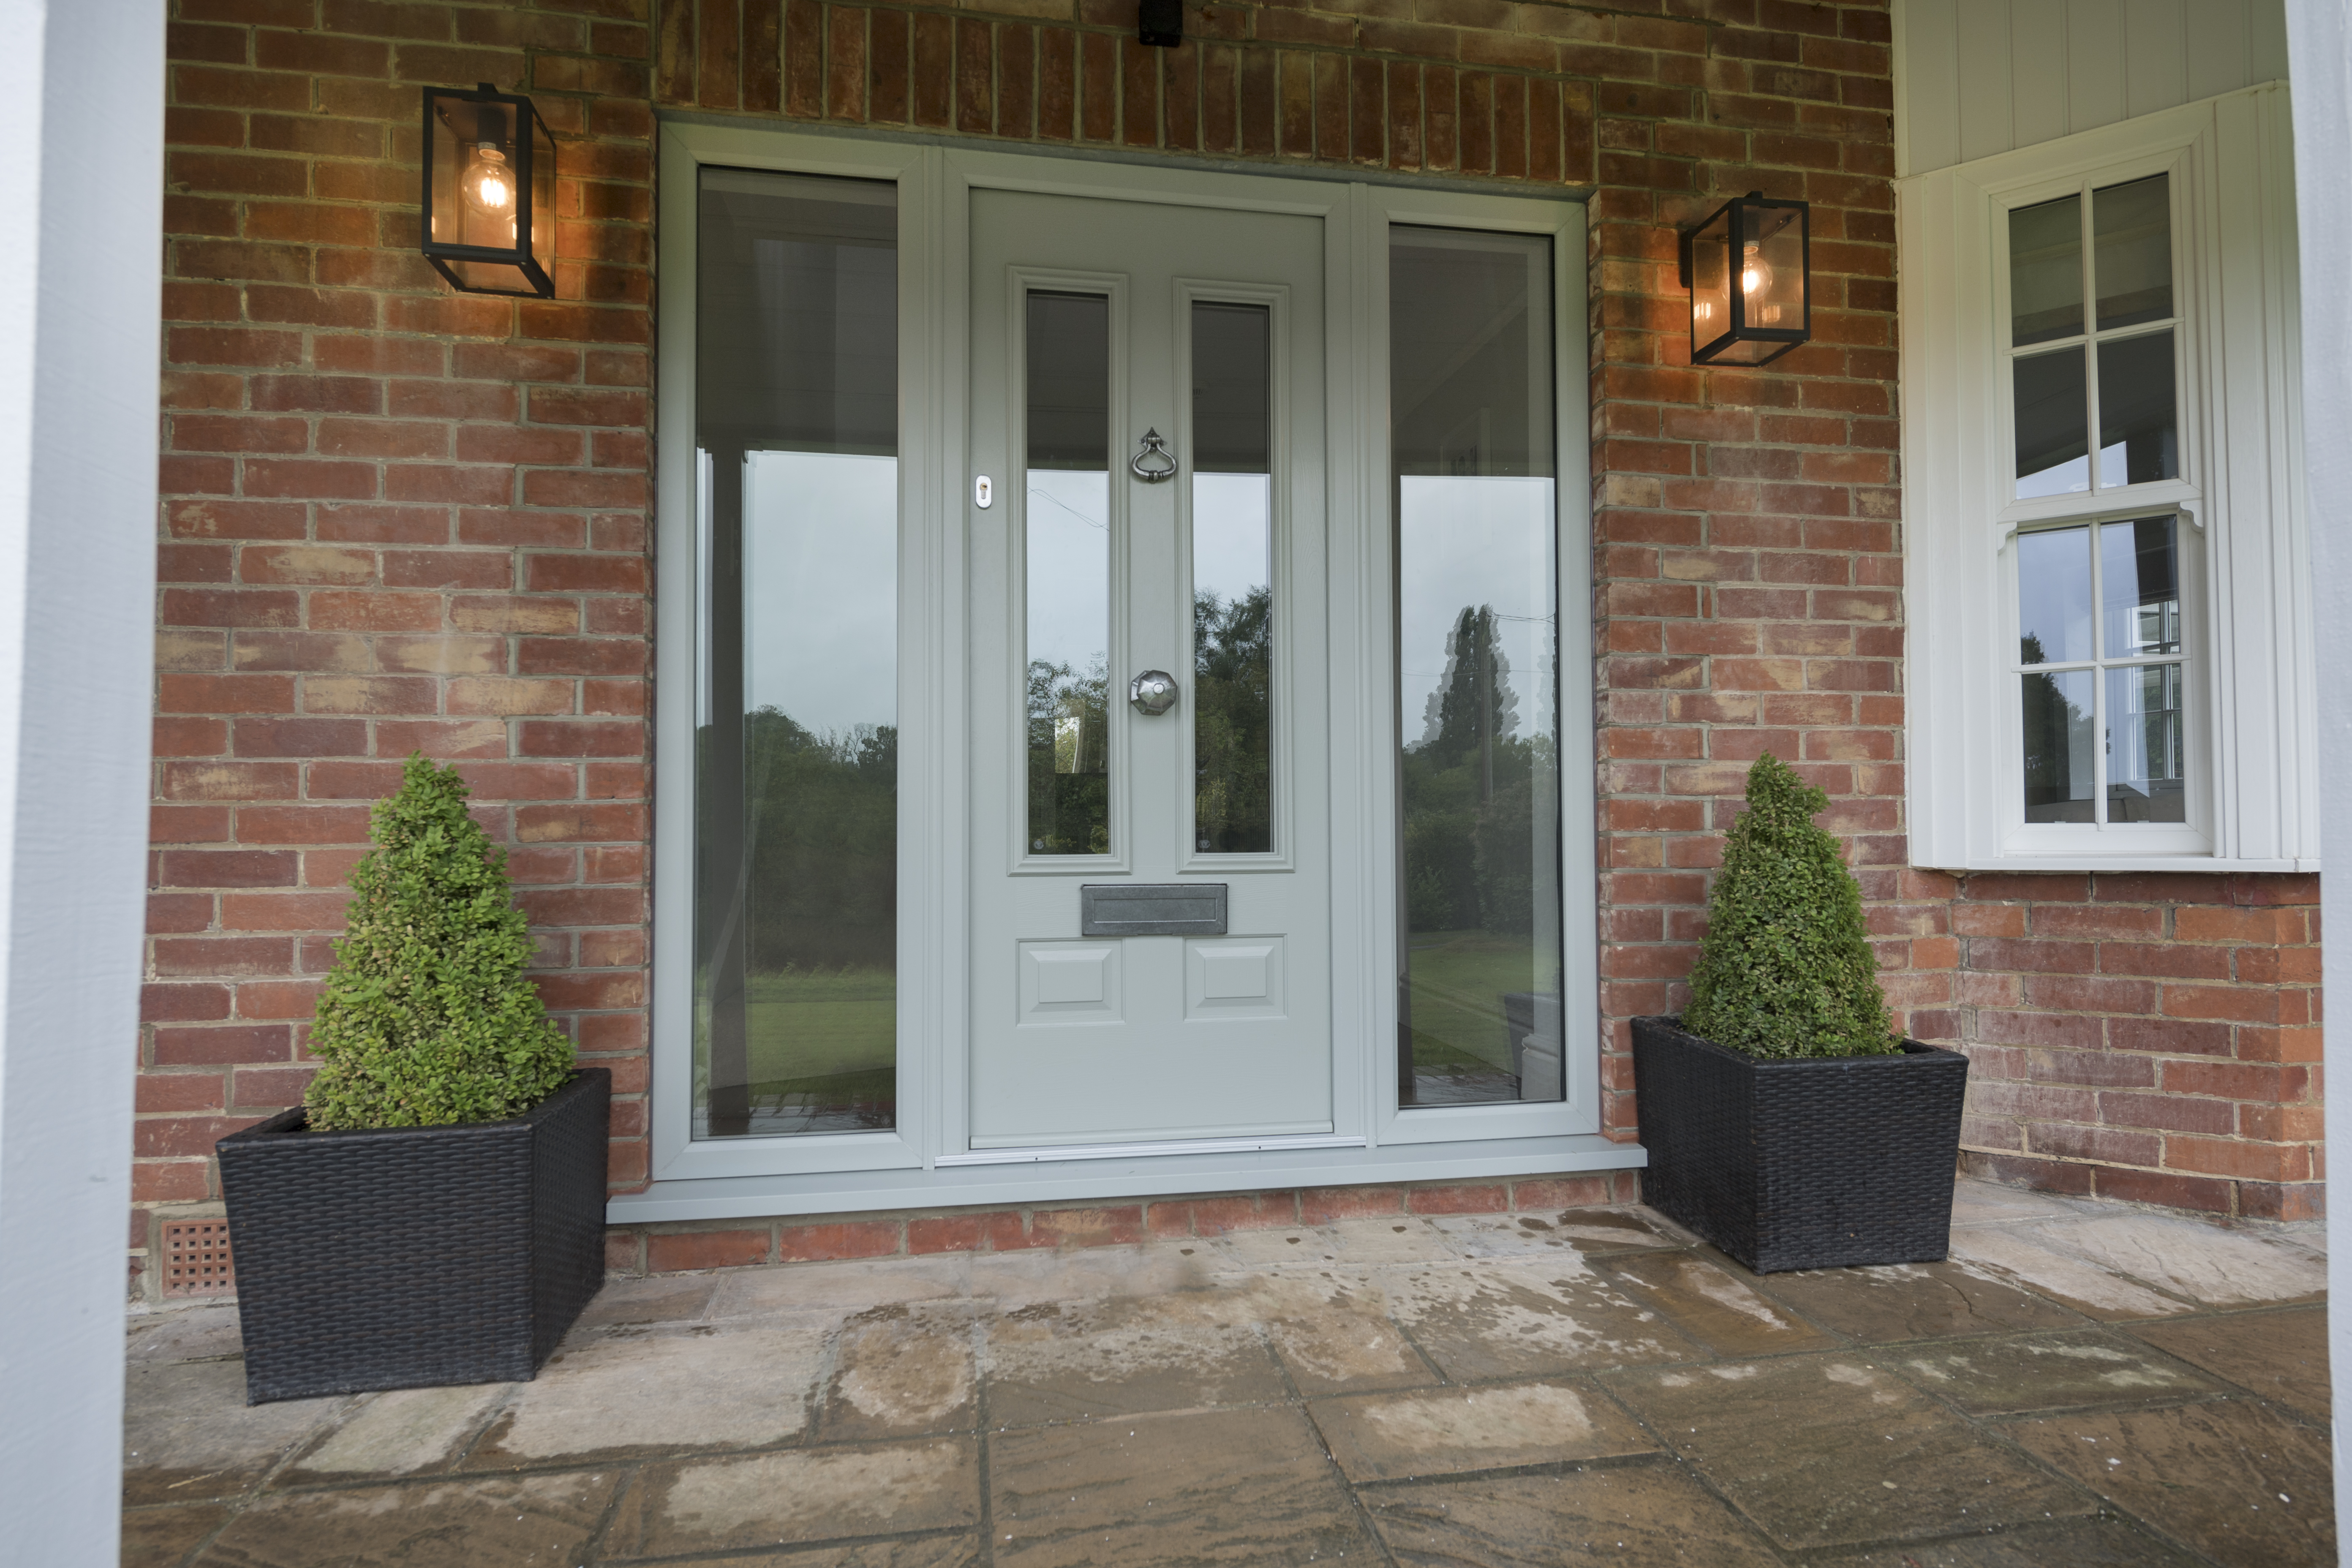 UPVC DOORS Morecambe & UPVC Doors Morecambe | UPVC Replacement Doors in Morecambe